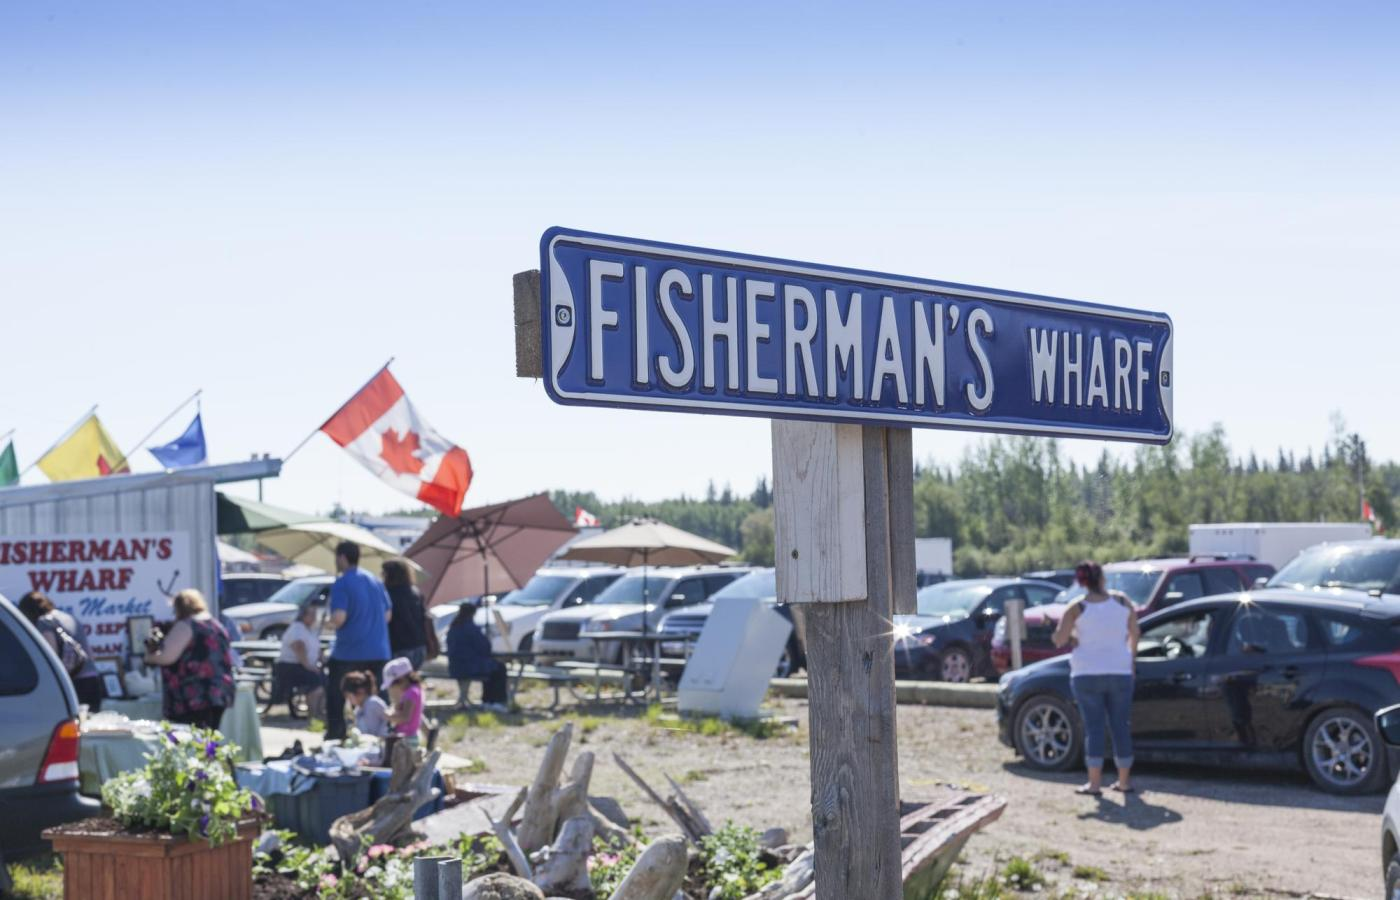 A bustling crowd at the fisherman's wharf in Hay River